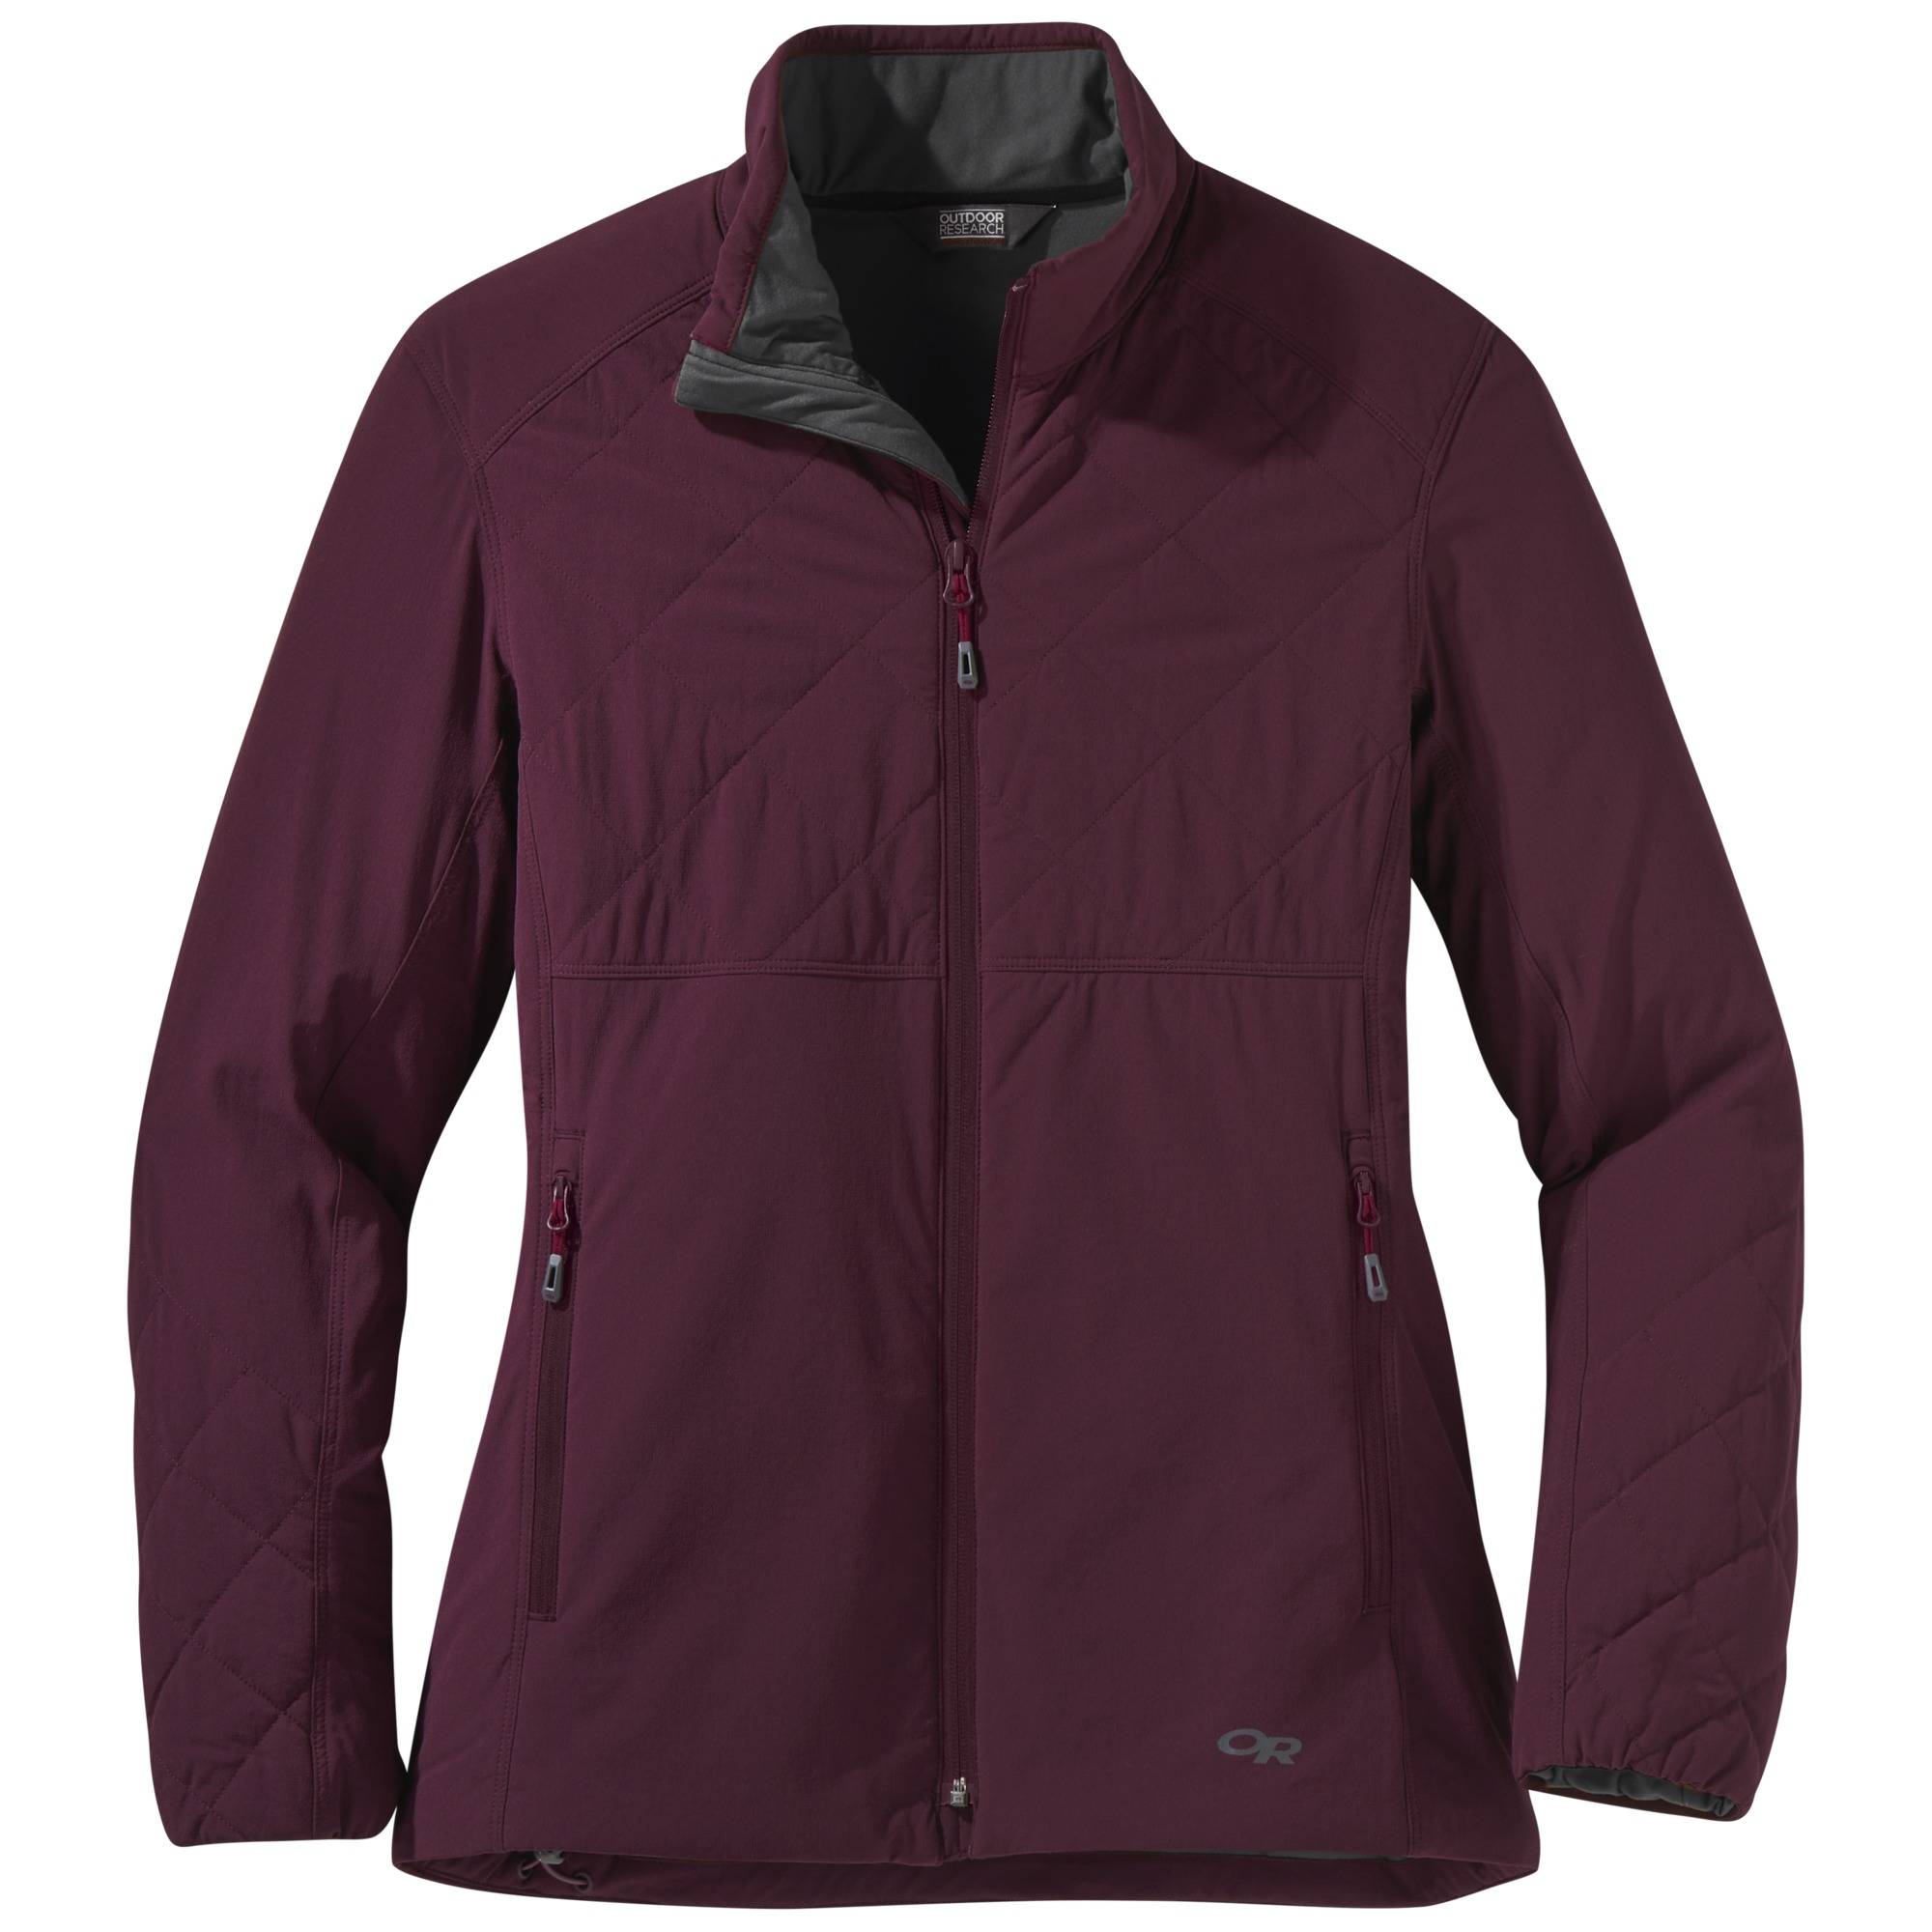 8847a4c04 Women's Winter Ferrosi Jacket - cacao | Outdoor Research